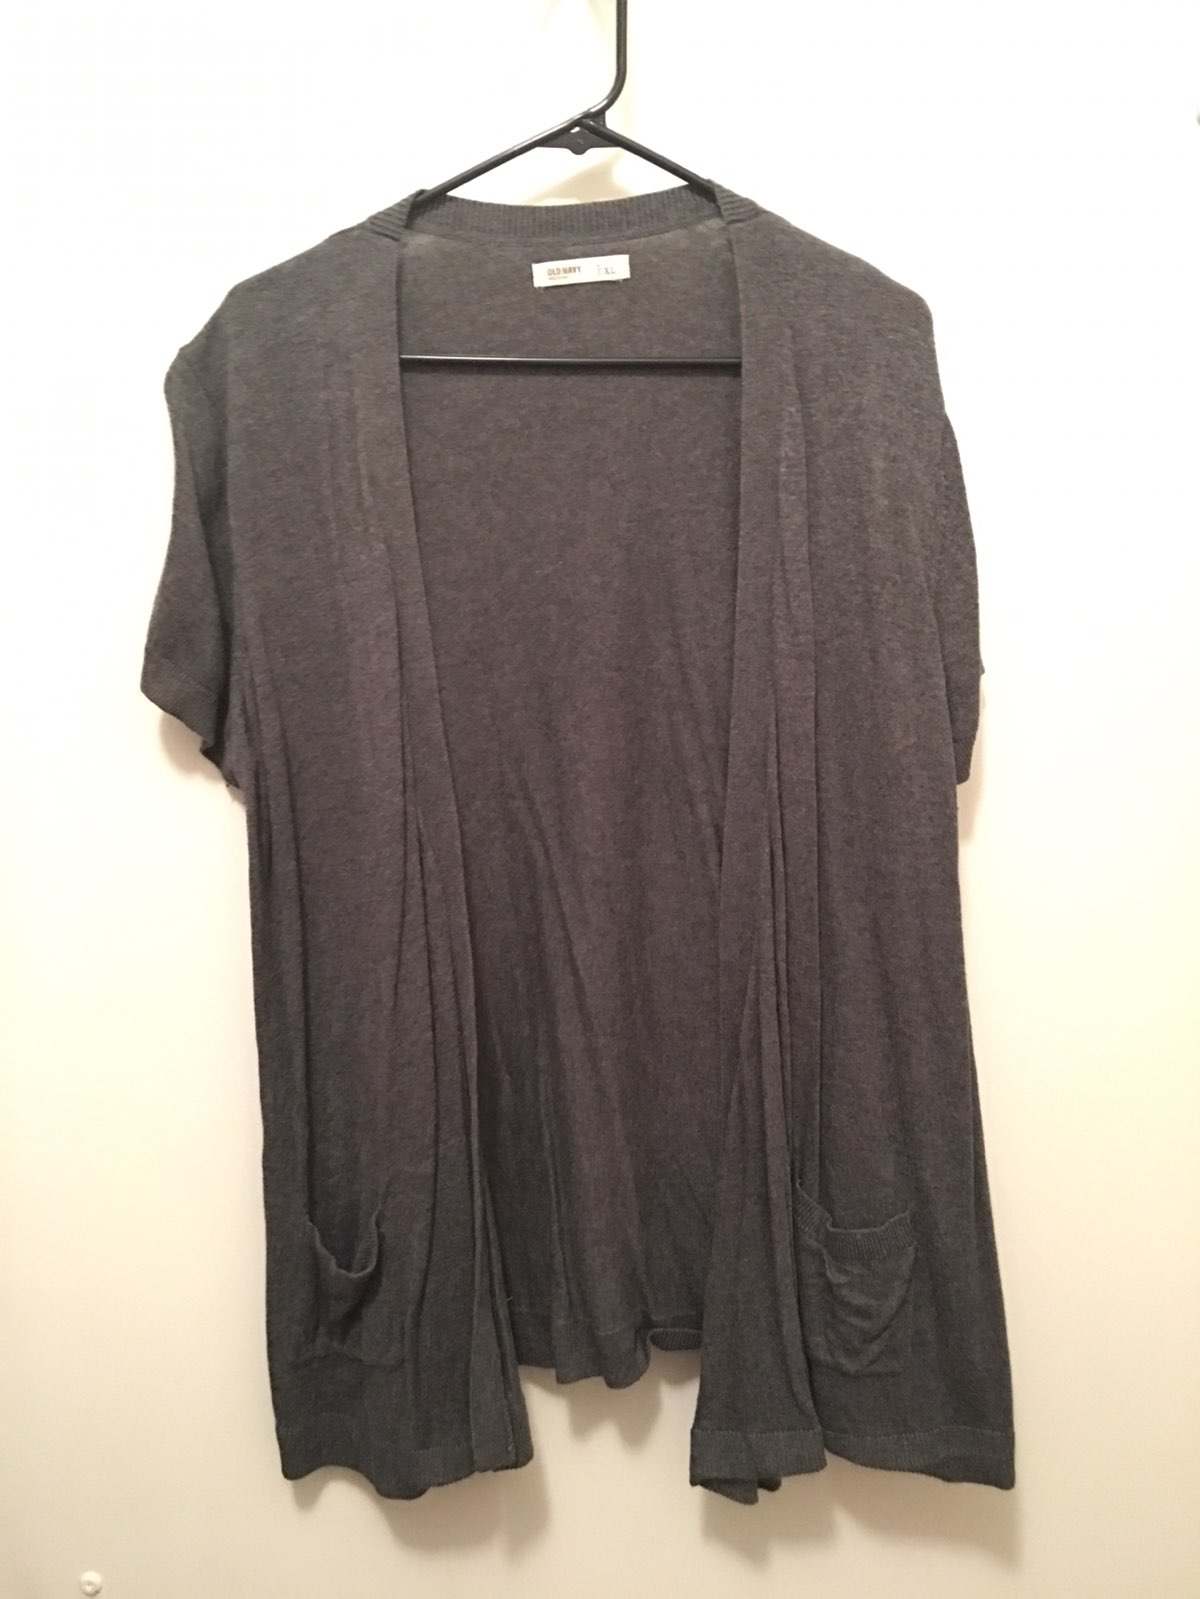 Women's Size XL Short Sleeve Cardigan - Mercari: BUY & SELL THINGS ...